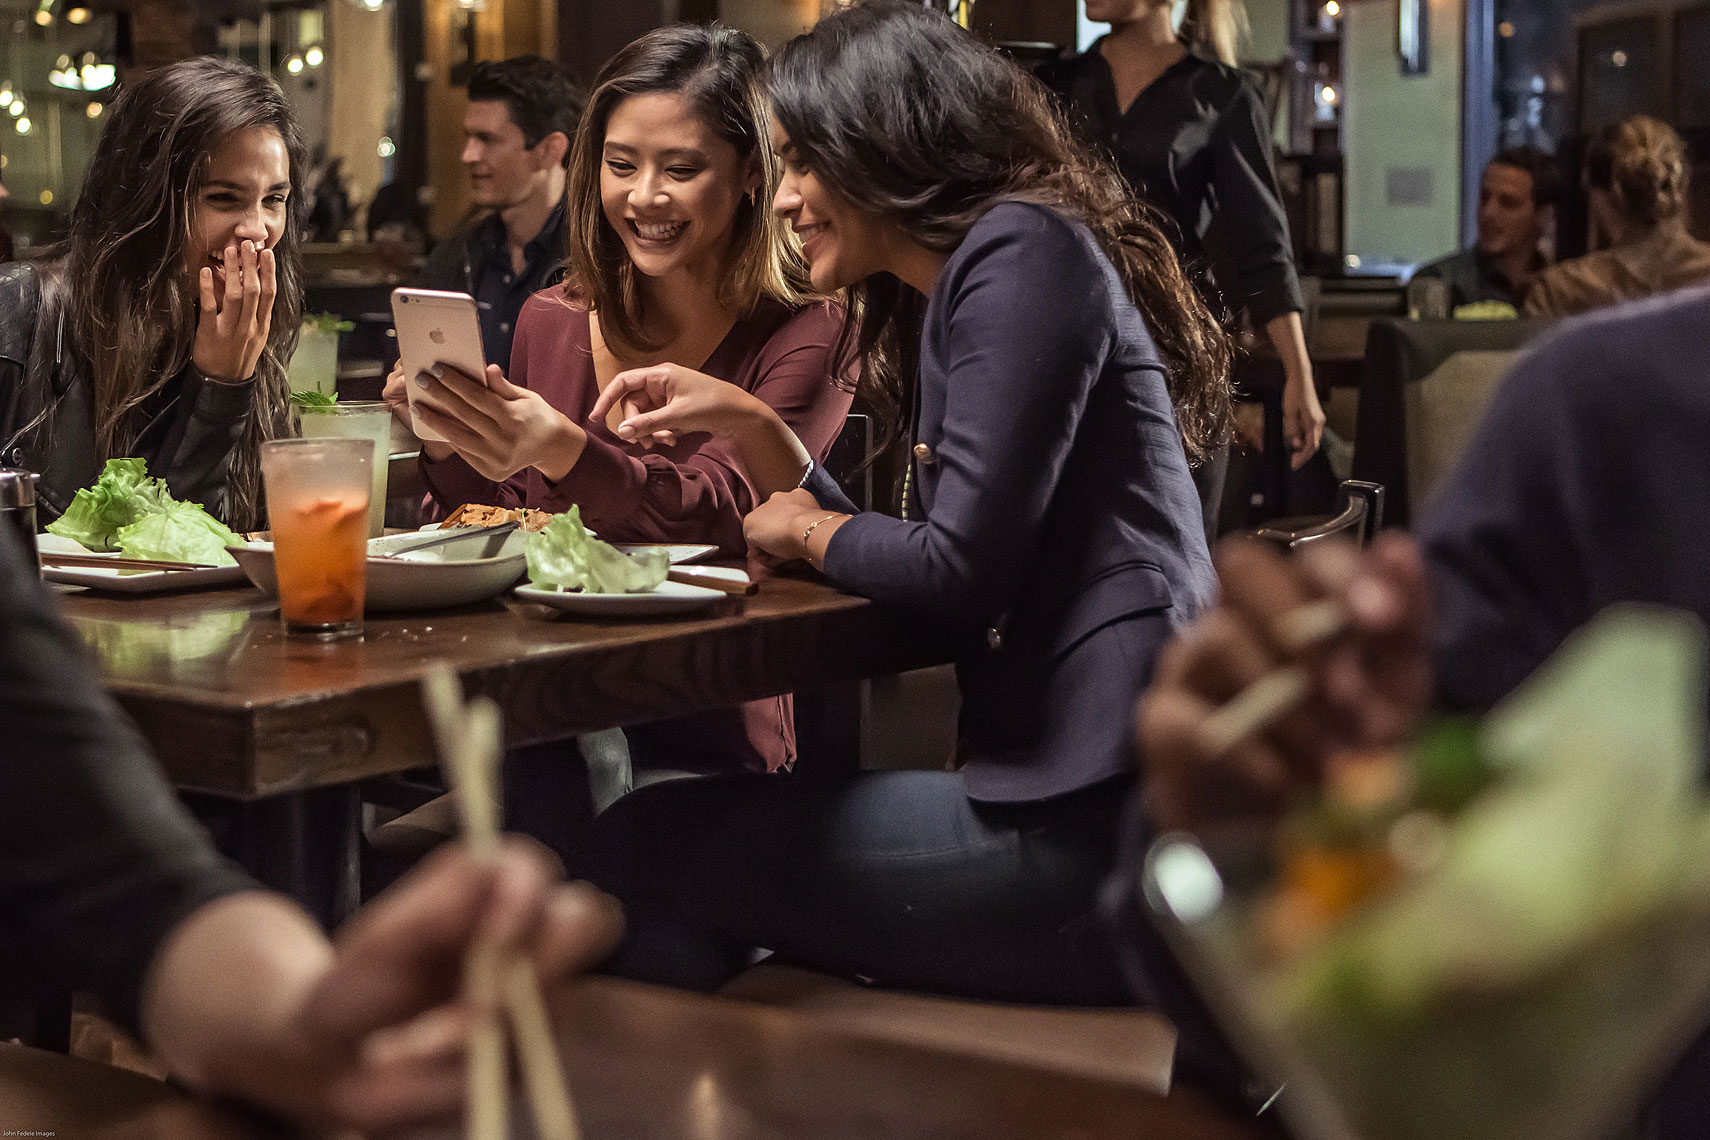 Women enjoying Chinese food while looking at a phone | P. F. Chang